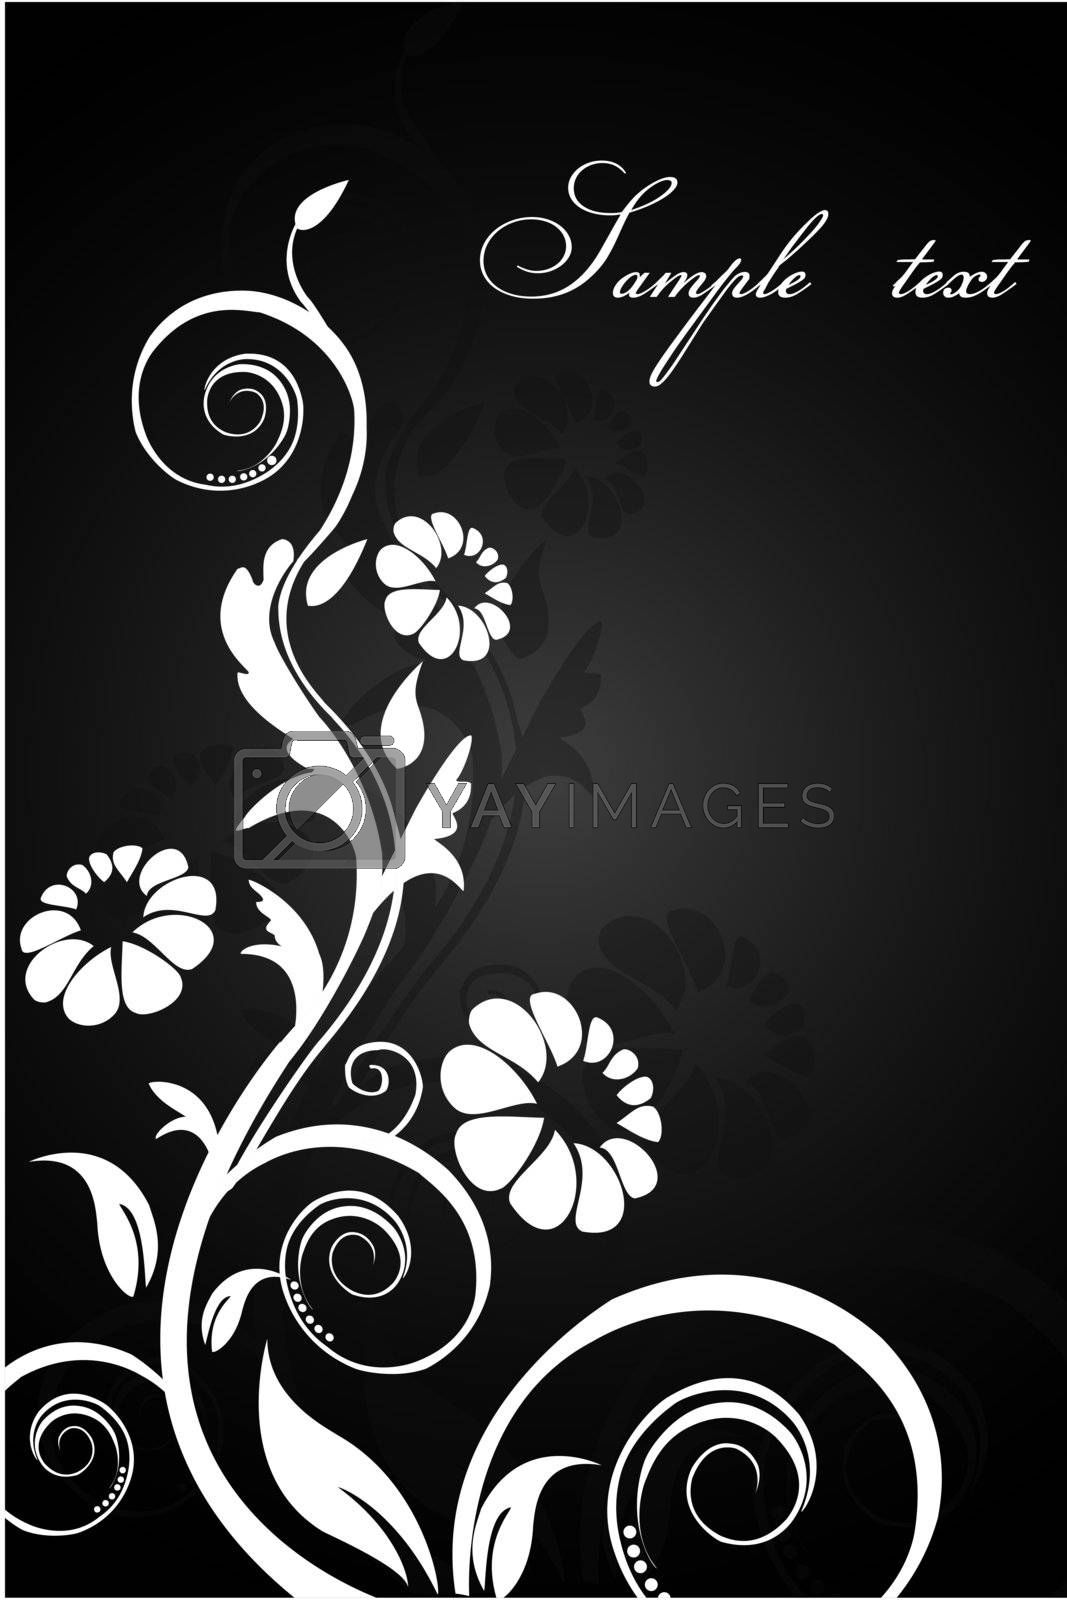 Royalty free image of classical floral background by get4net